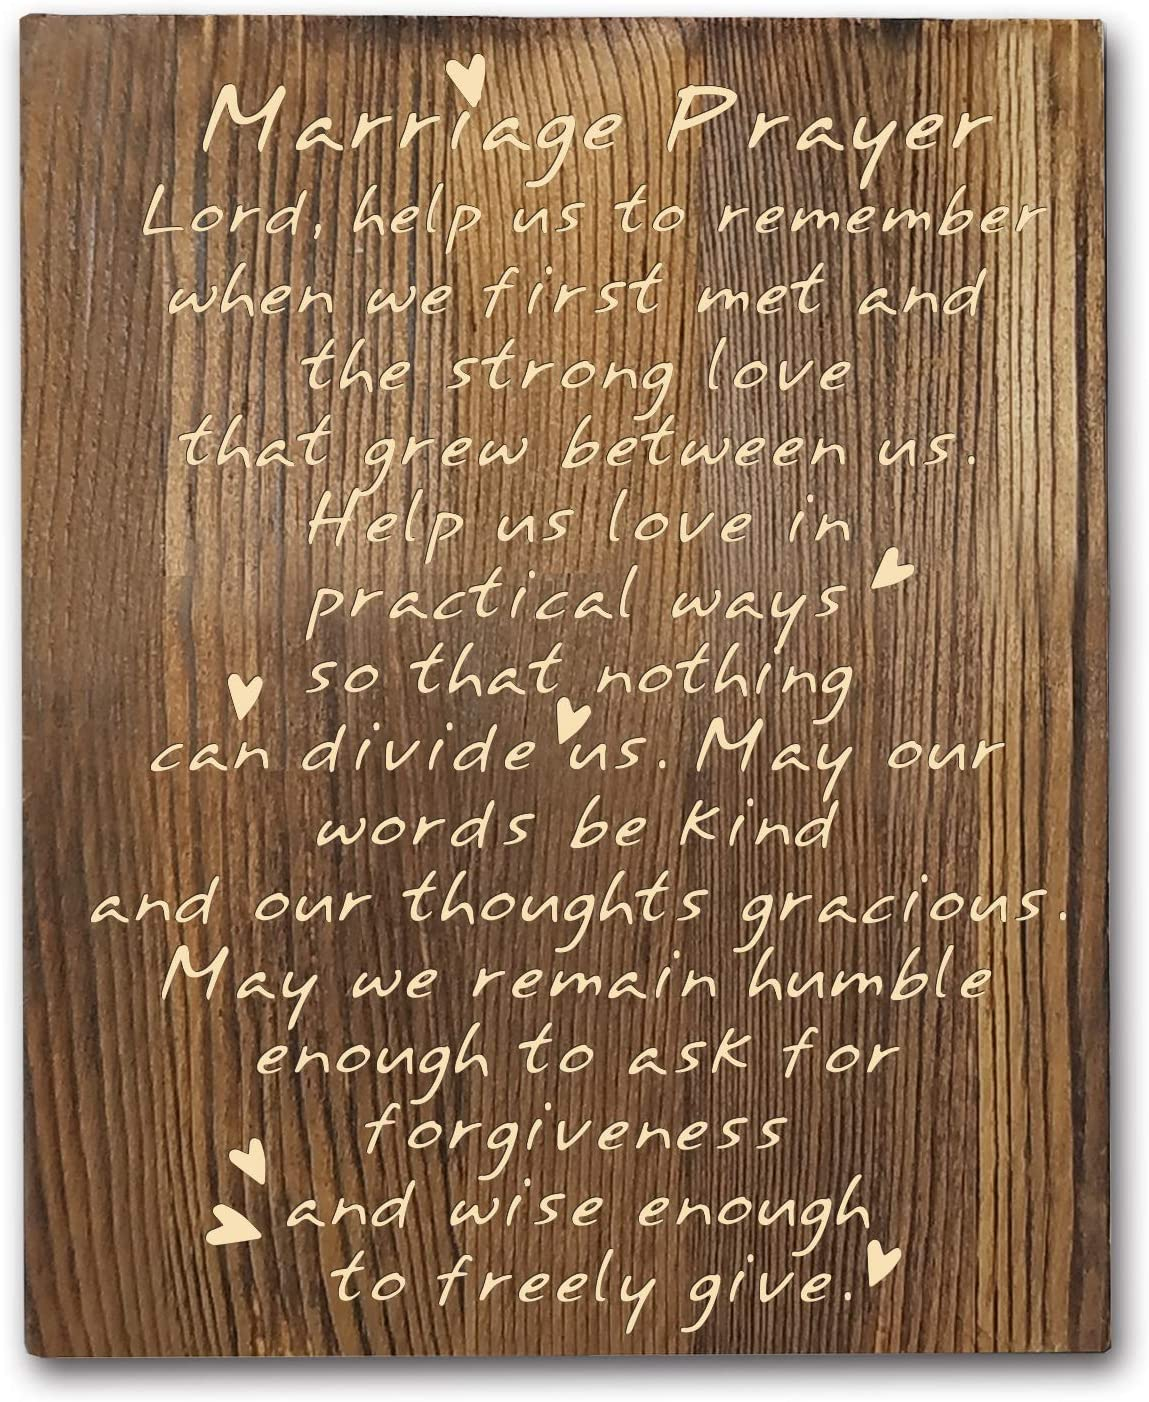 Agantree art Marriage Wood Plaque Inspiring Quote, Rustic Classy Vertical Wood Wall Hanging Decoration 8